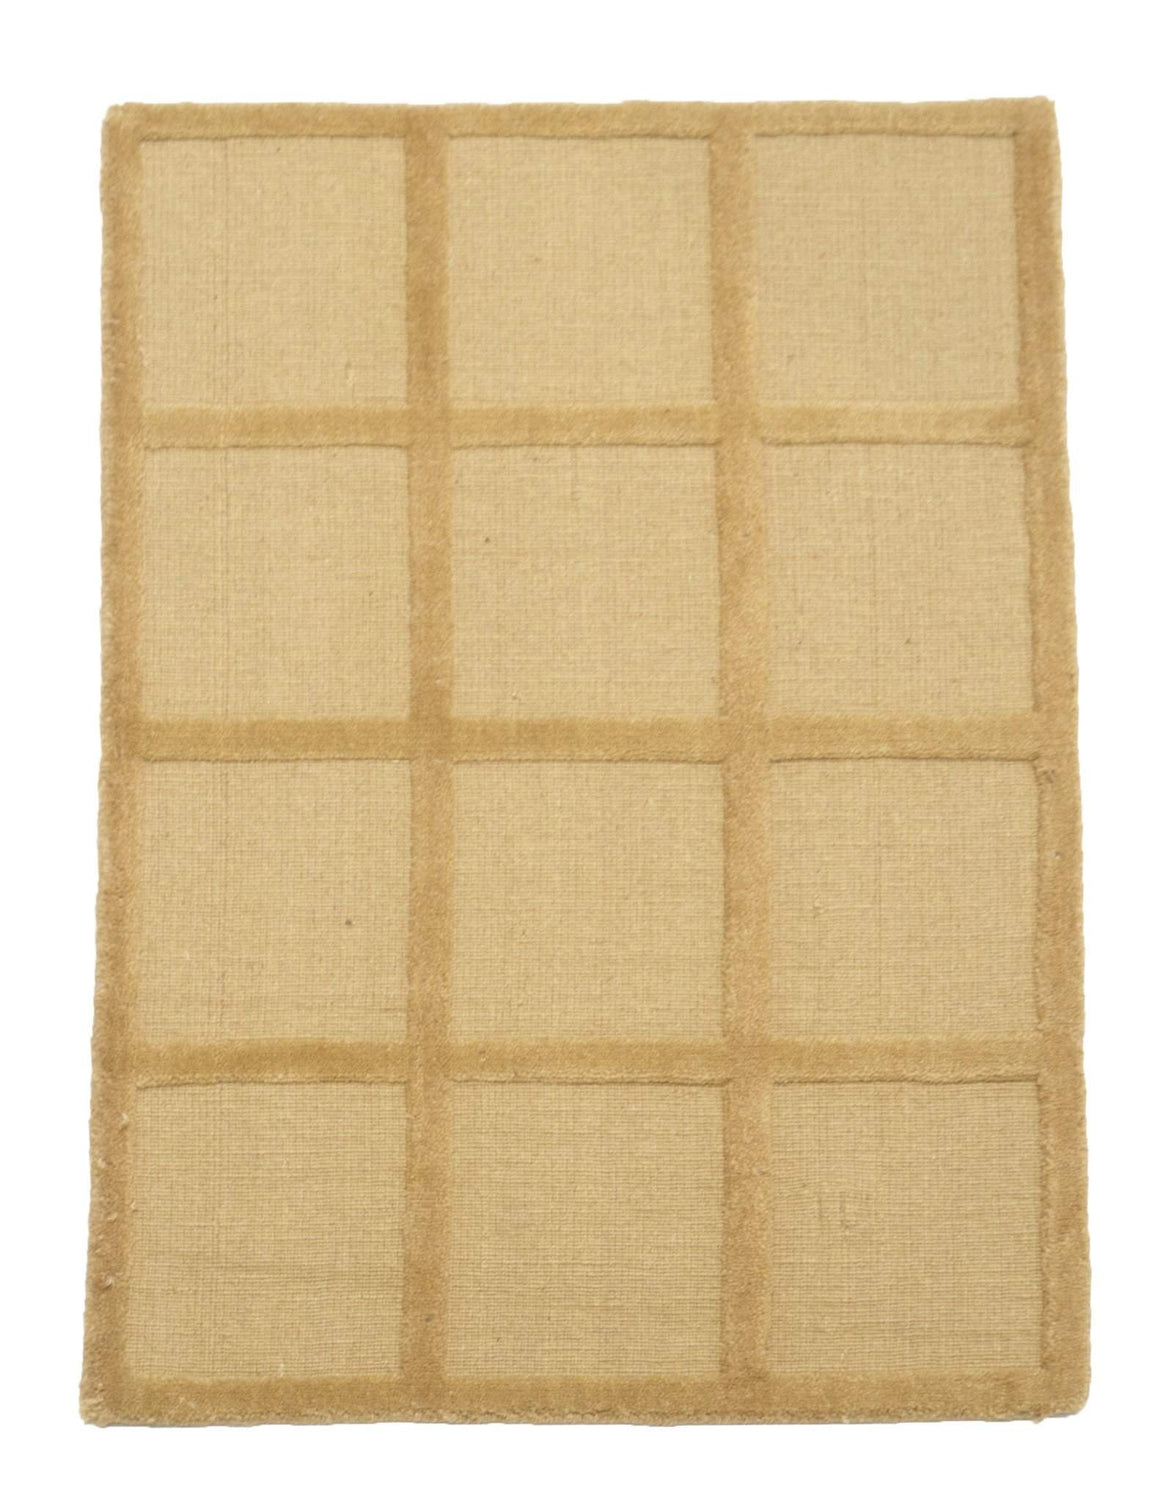 2' x 3' Modern Square Pattern Wool Small Rug by Rug Shop and More Area Rugs - Rug Shop and More